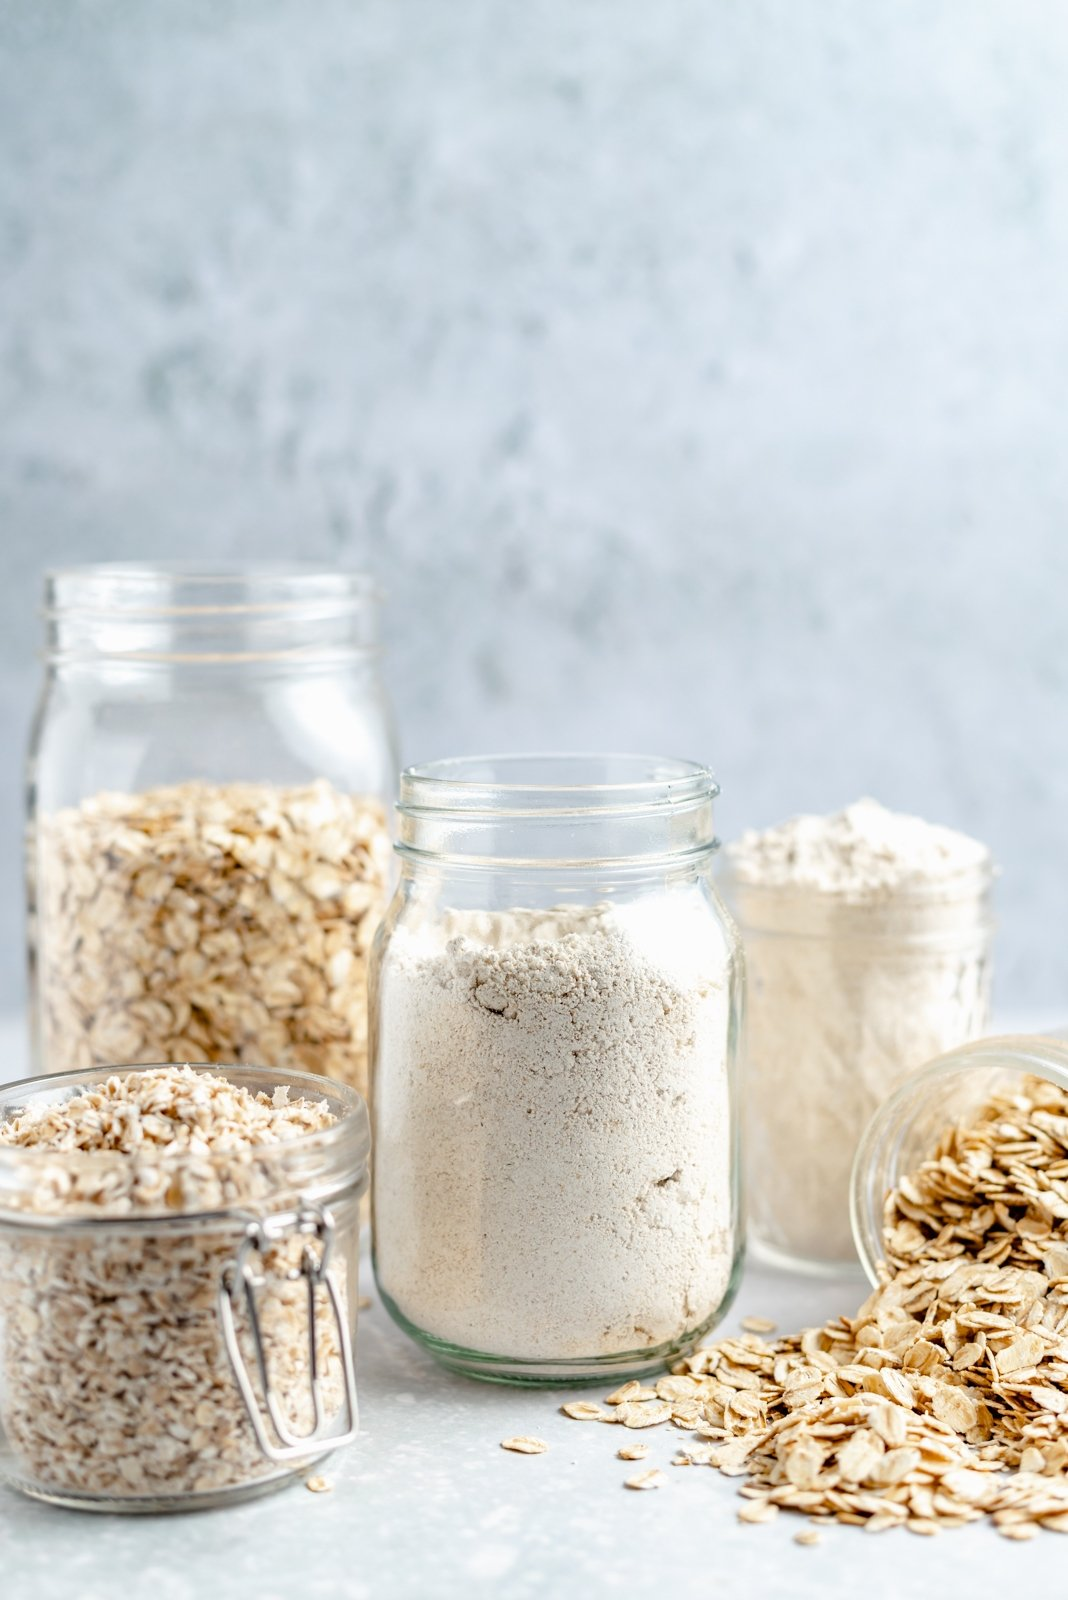 oats and homemade oat flour in jars